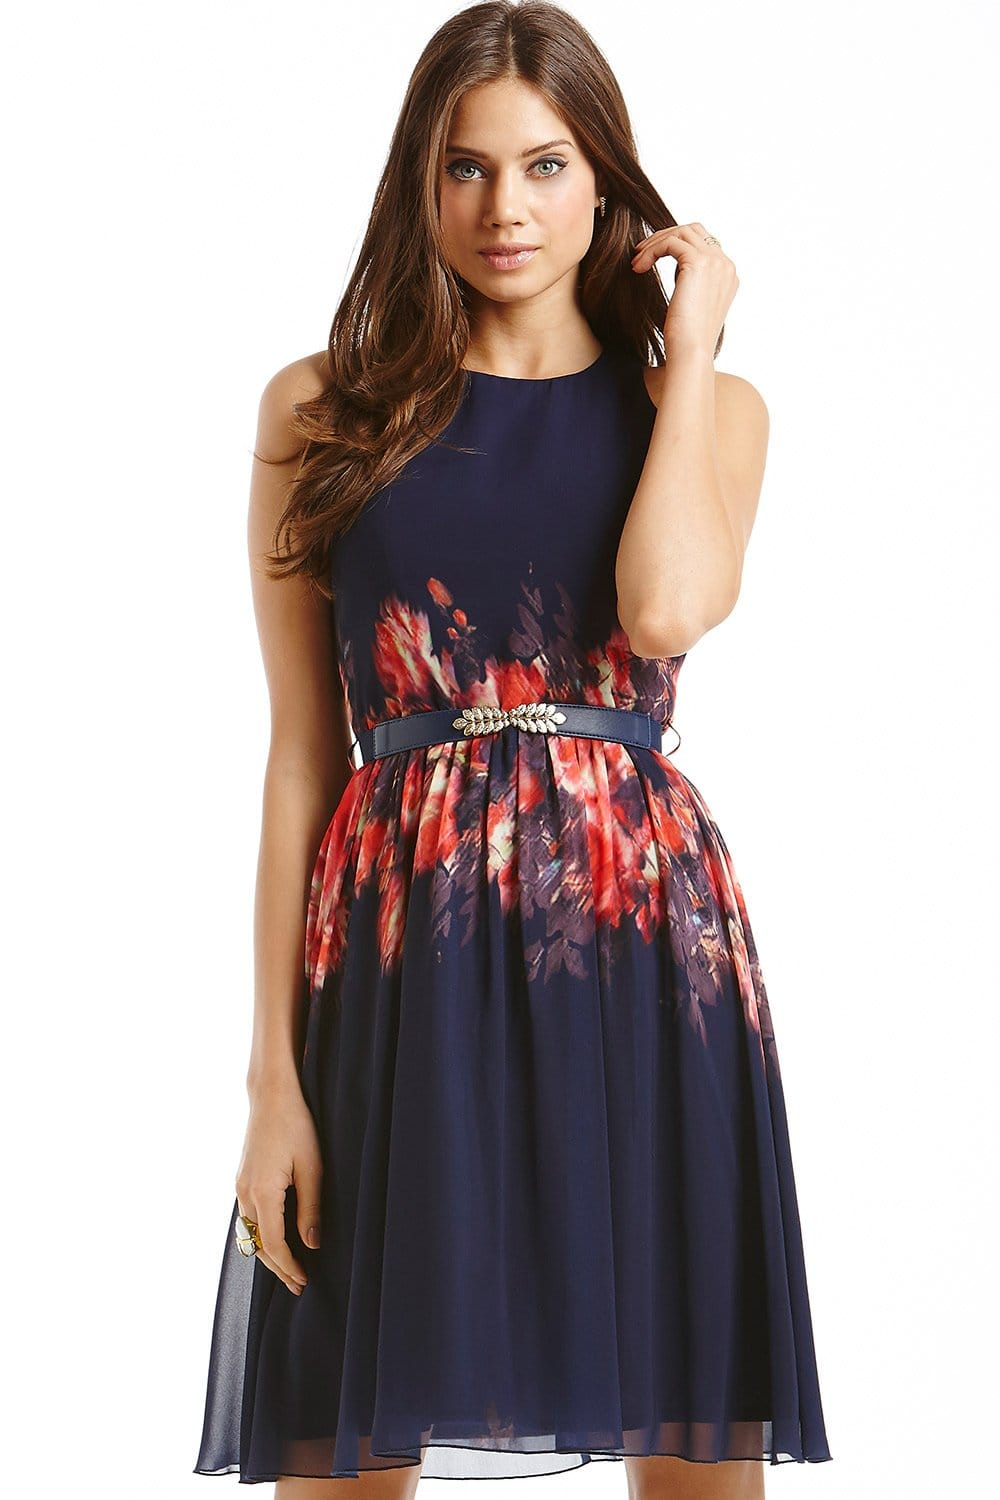 Navy Blurred Floral Belted Fit And Flare Dress From